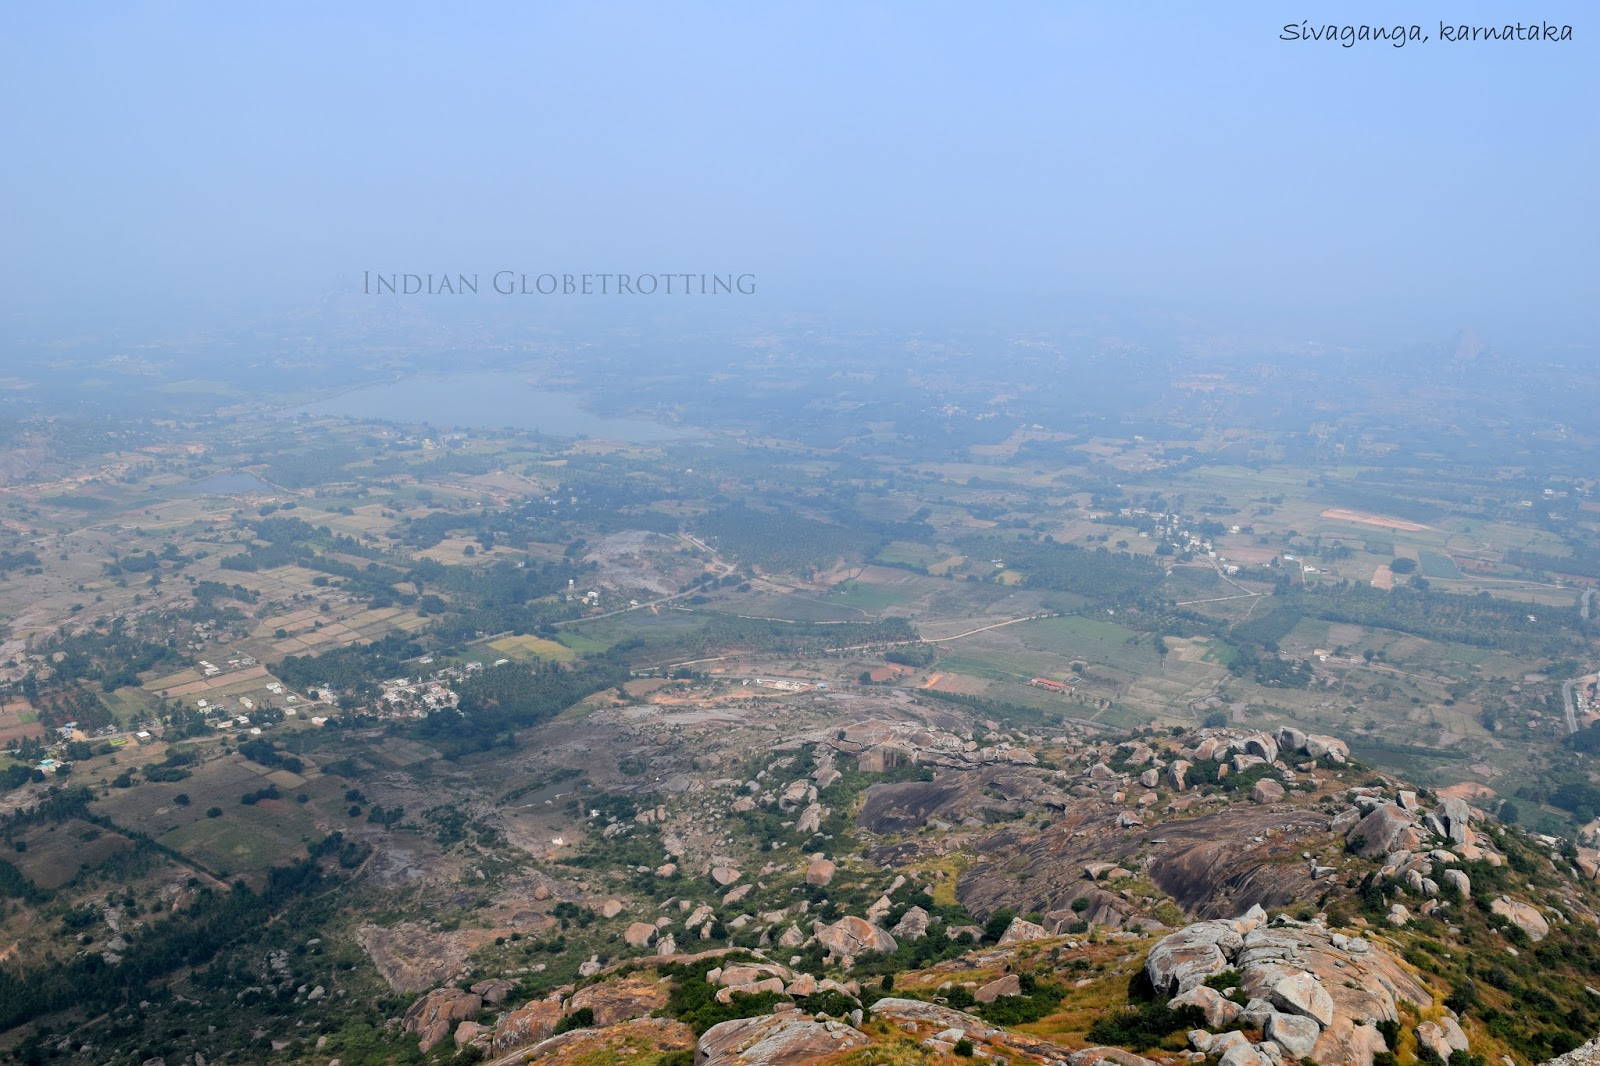 Bird View from Shivaganga Hill or shivaganga betta